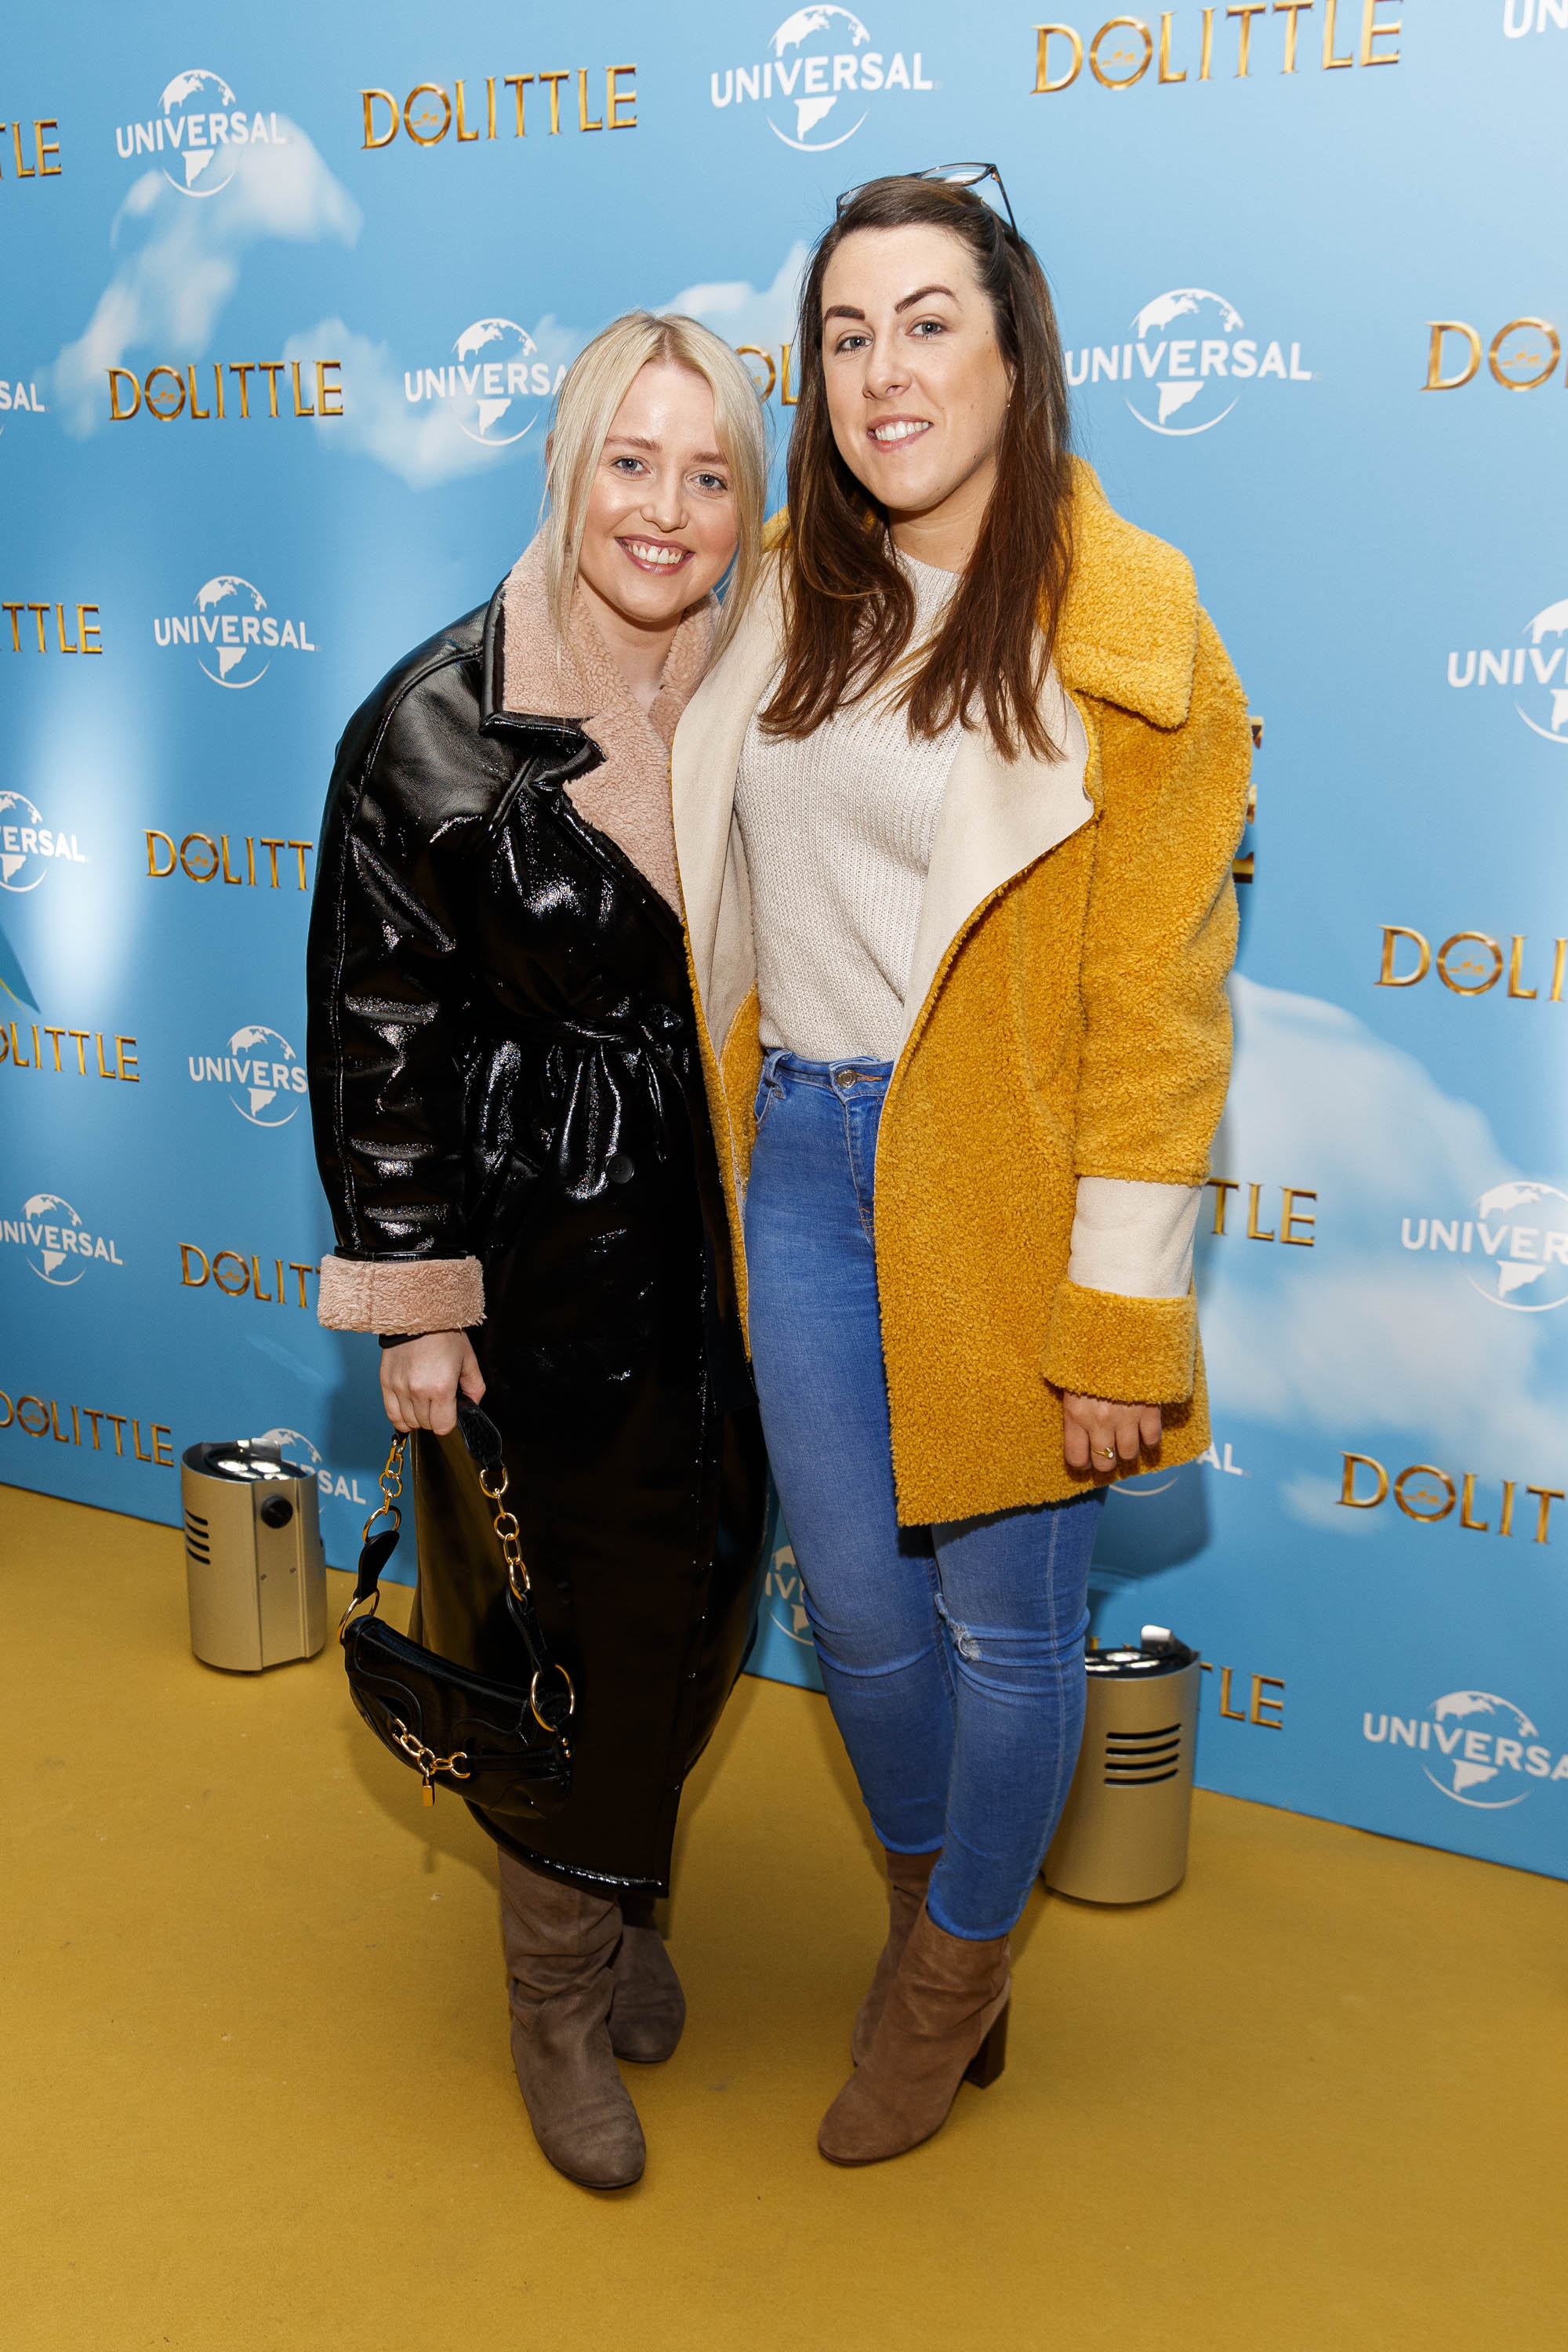 Lorna Mullett and GHrace Coughlan pictured at the Universal Pictures special preview screening of Dolittle at Odeon Point Square, Dublin.